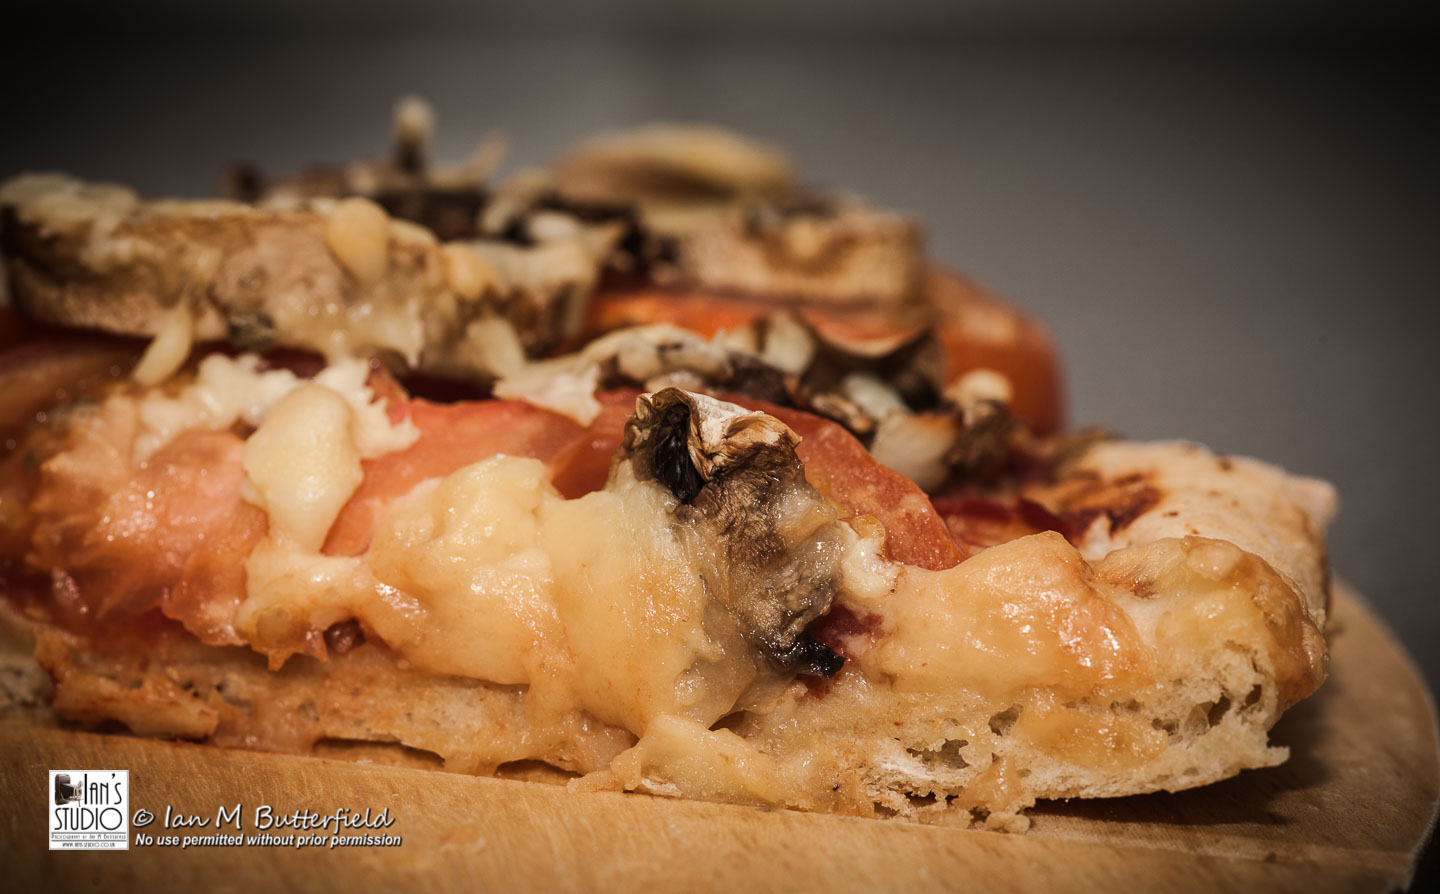 ACADEMY BITE: Photo shoots at home #3 – Home-made pizza